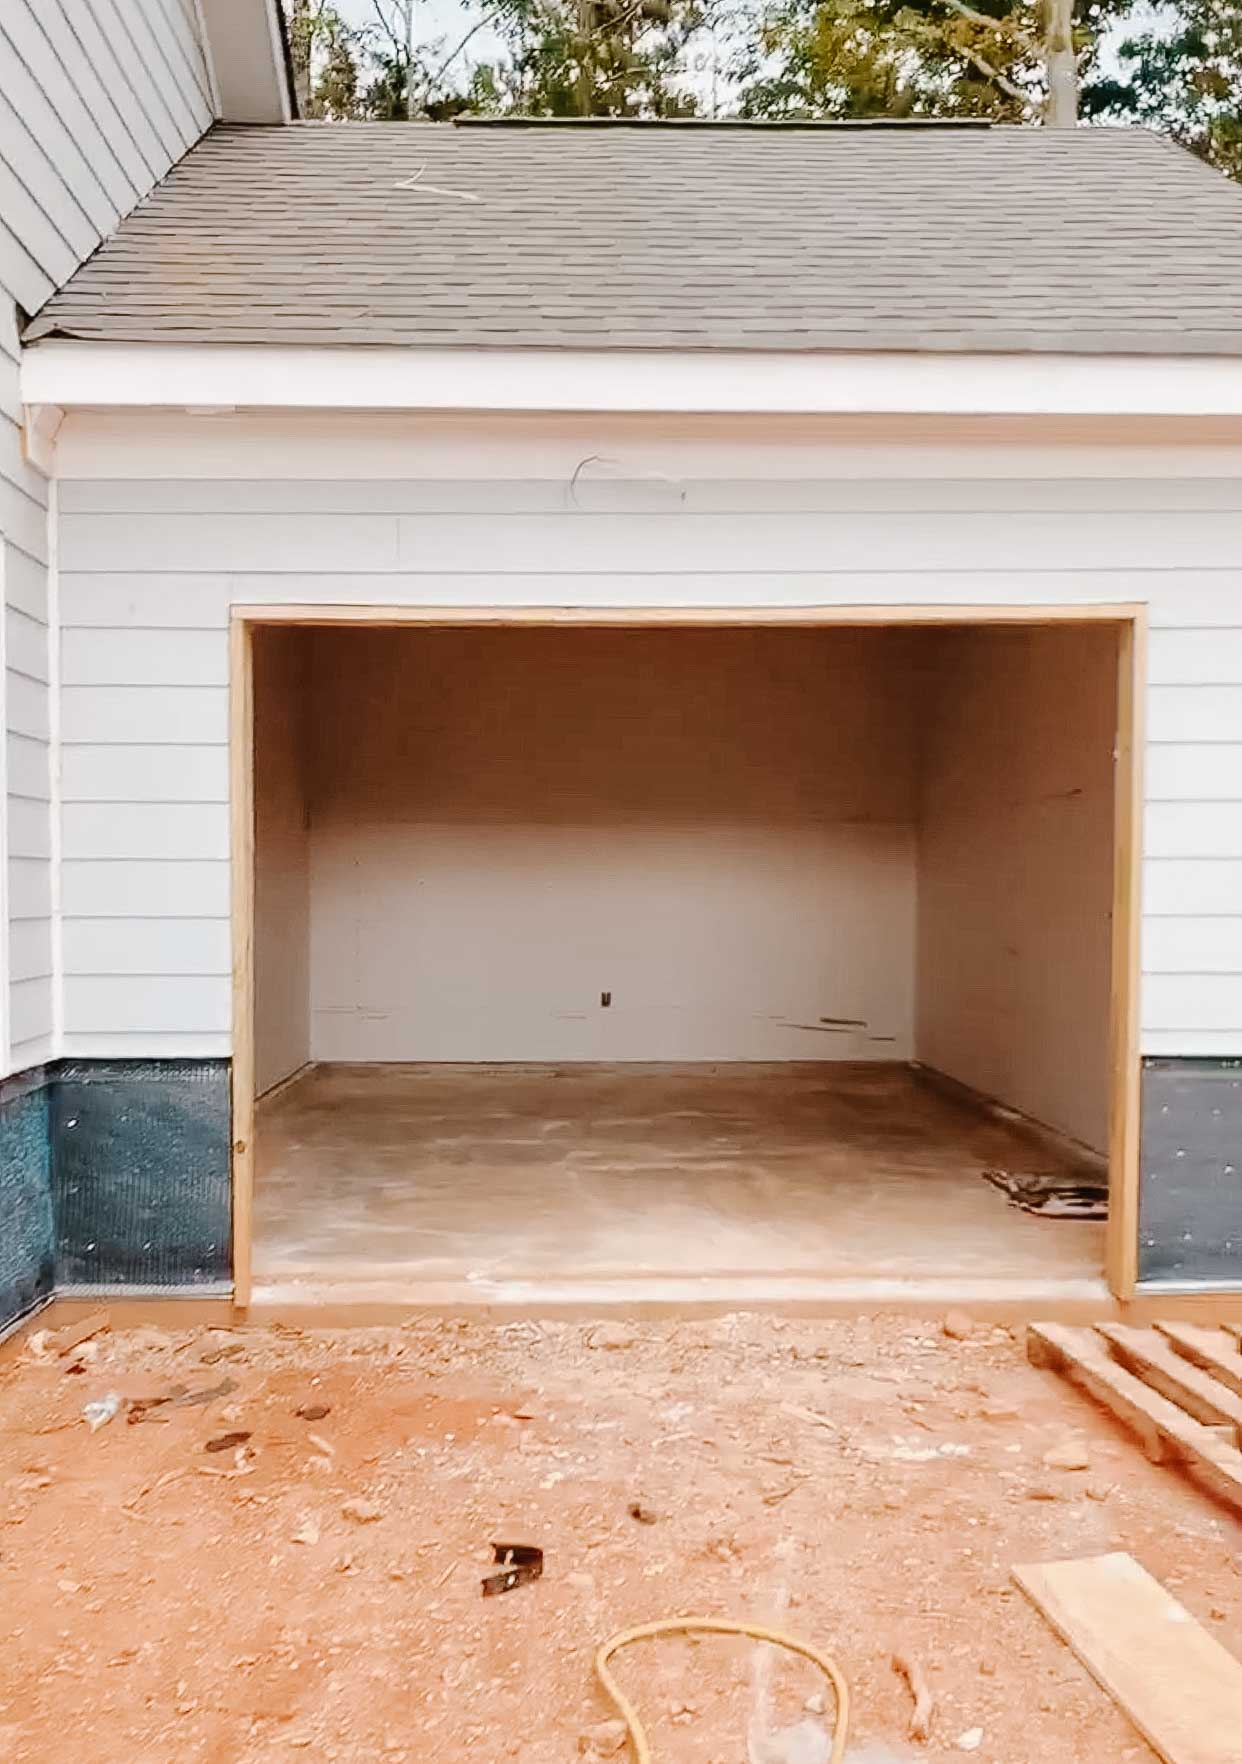 Carriage Garage for Storage on a Ranch Home